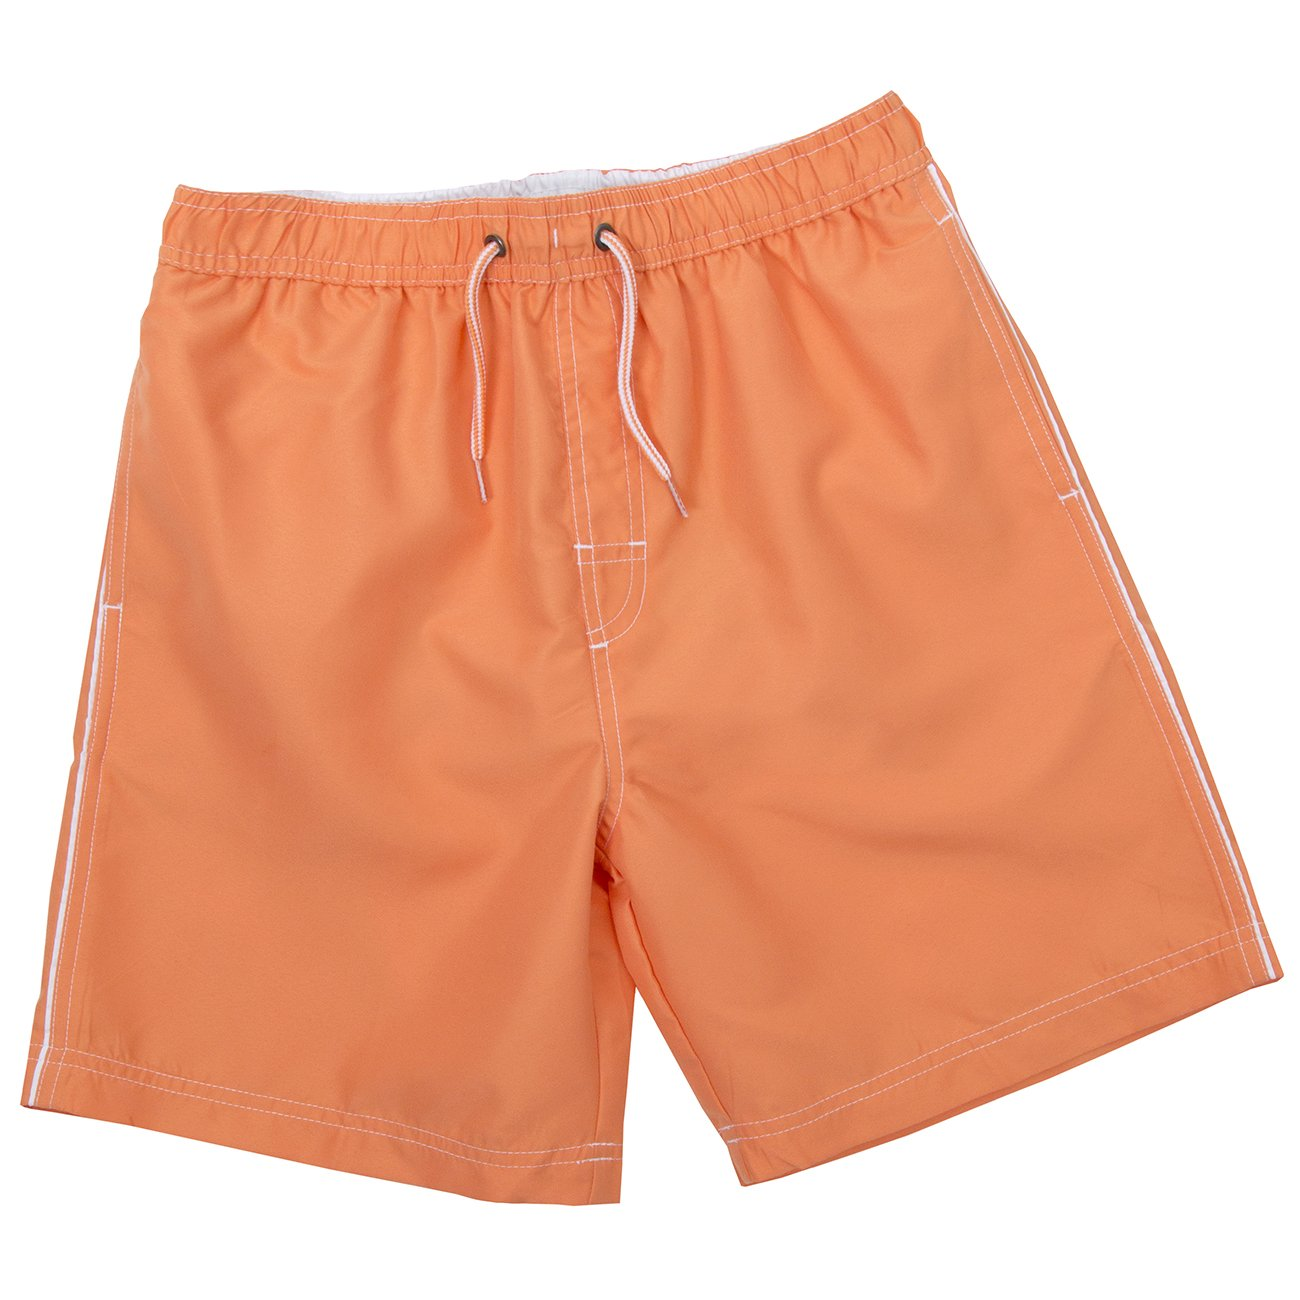 Cargo Bay Infant Boys Colourful Swim Shorts Perfect For Summer Beach Holidays Orange 13 Years